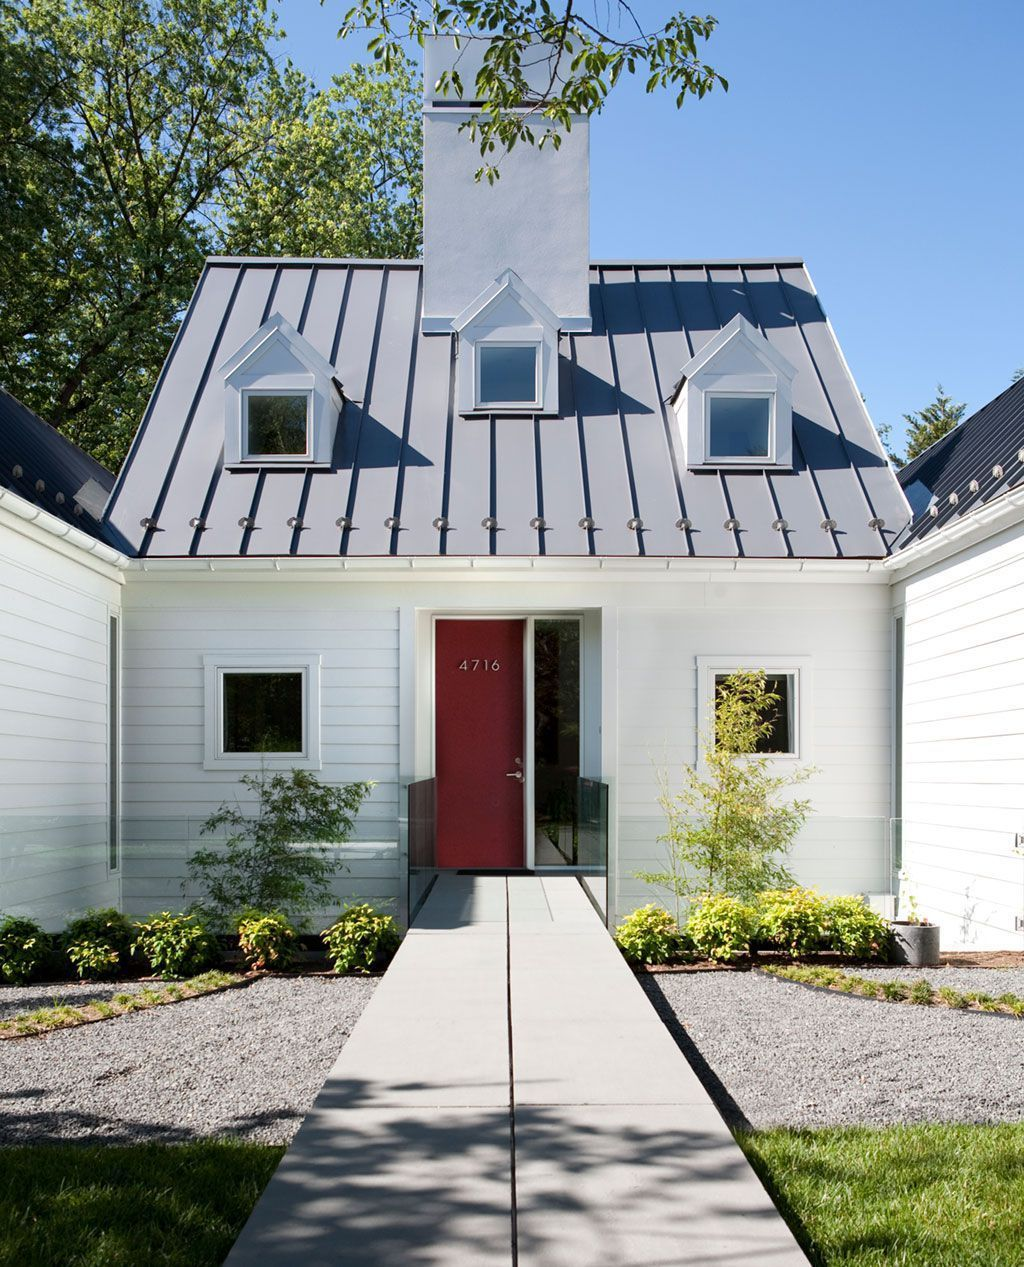 7 Remarkable Simple Ideas Tin Roofing House Roofing Terrace View Green Roofing Extension Roofing Garden Standing Seam Metal Roof Metal Roof Houses Metal Roof